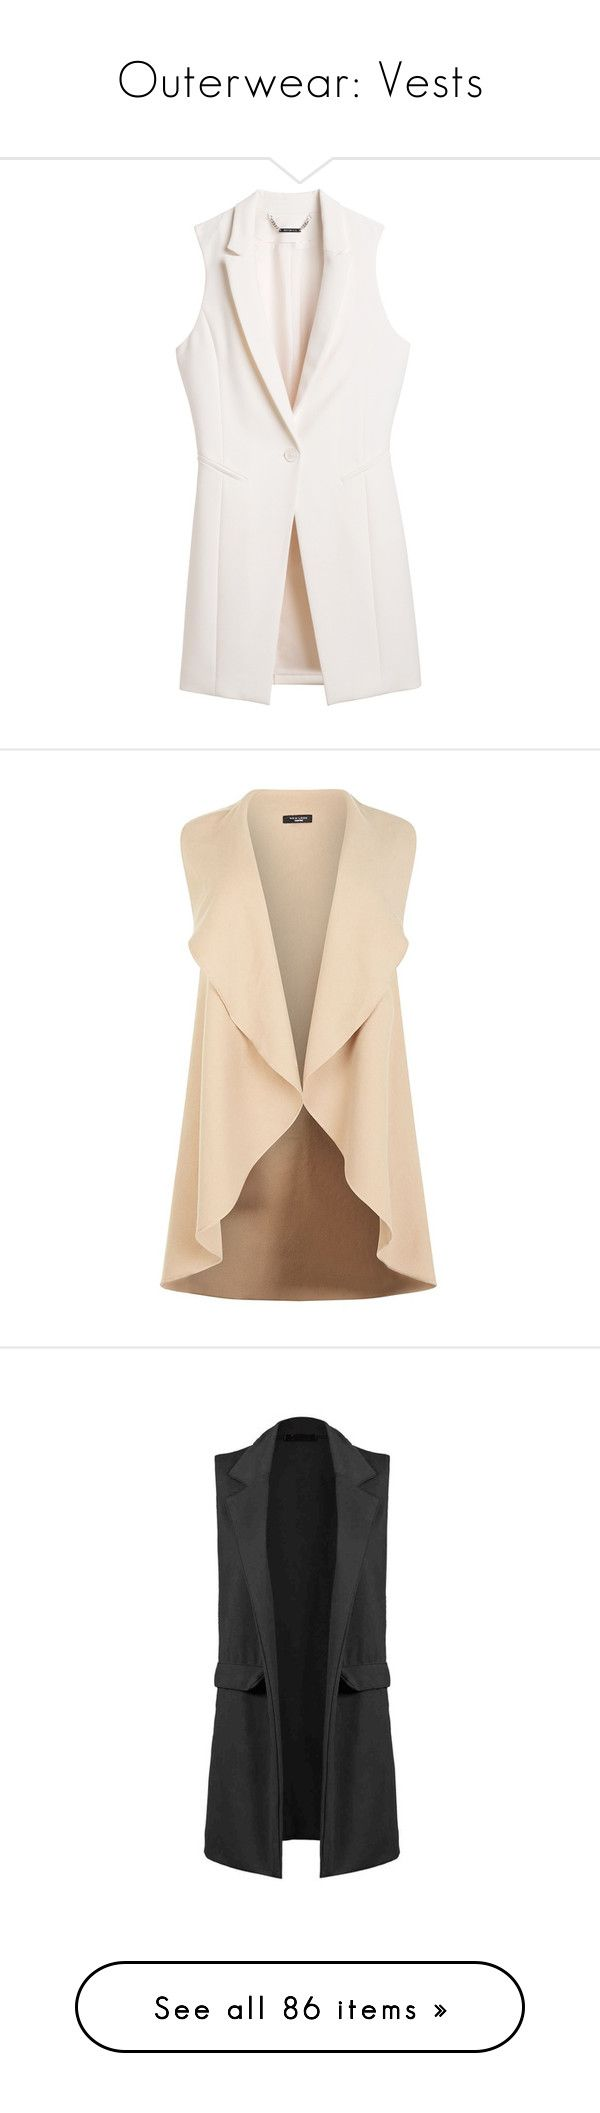 """""""Outerwear: Vests"""" by jay-to-the-kay ❤ liked on Polyvore featuring vests, outerwear, jackets, blazers, petite blazer, long blazer, long line blazer, no sleeve jacket, long blazer jacket and waterfall vest"""